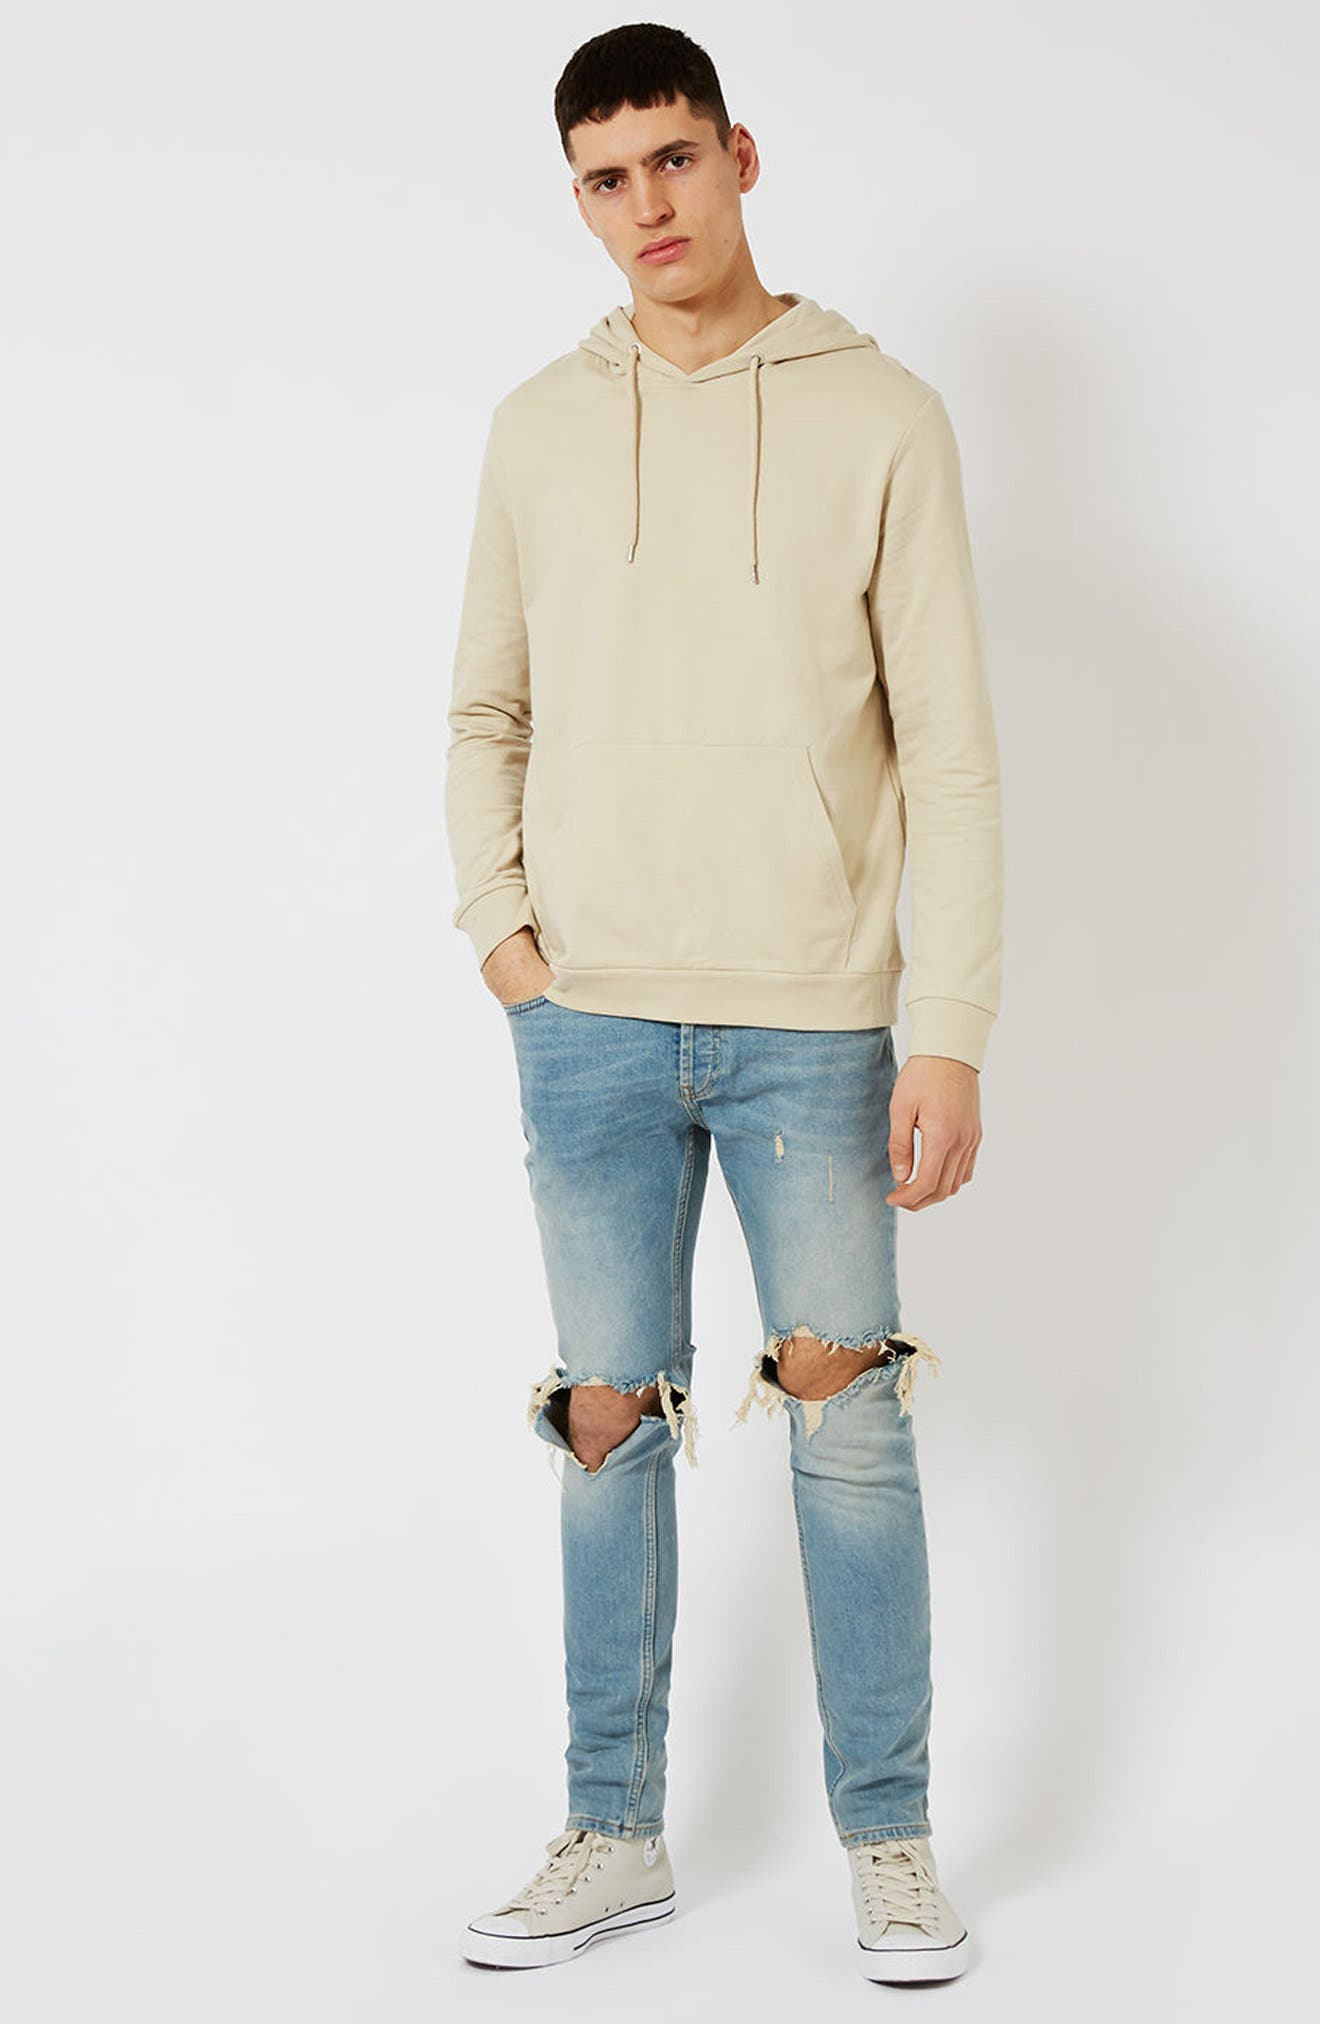 Ripped Stretch Skinny Jeans,                             Alternate thumbnail 8, color,                             LIGHT WASH DENIM